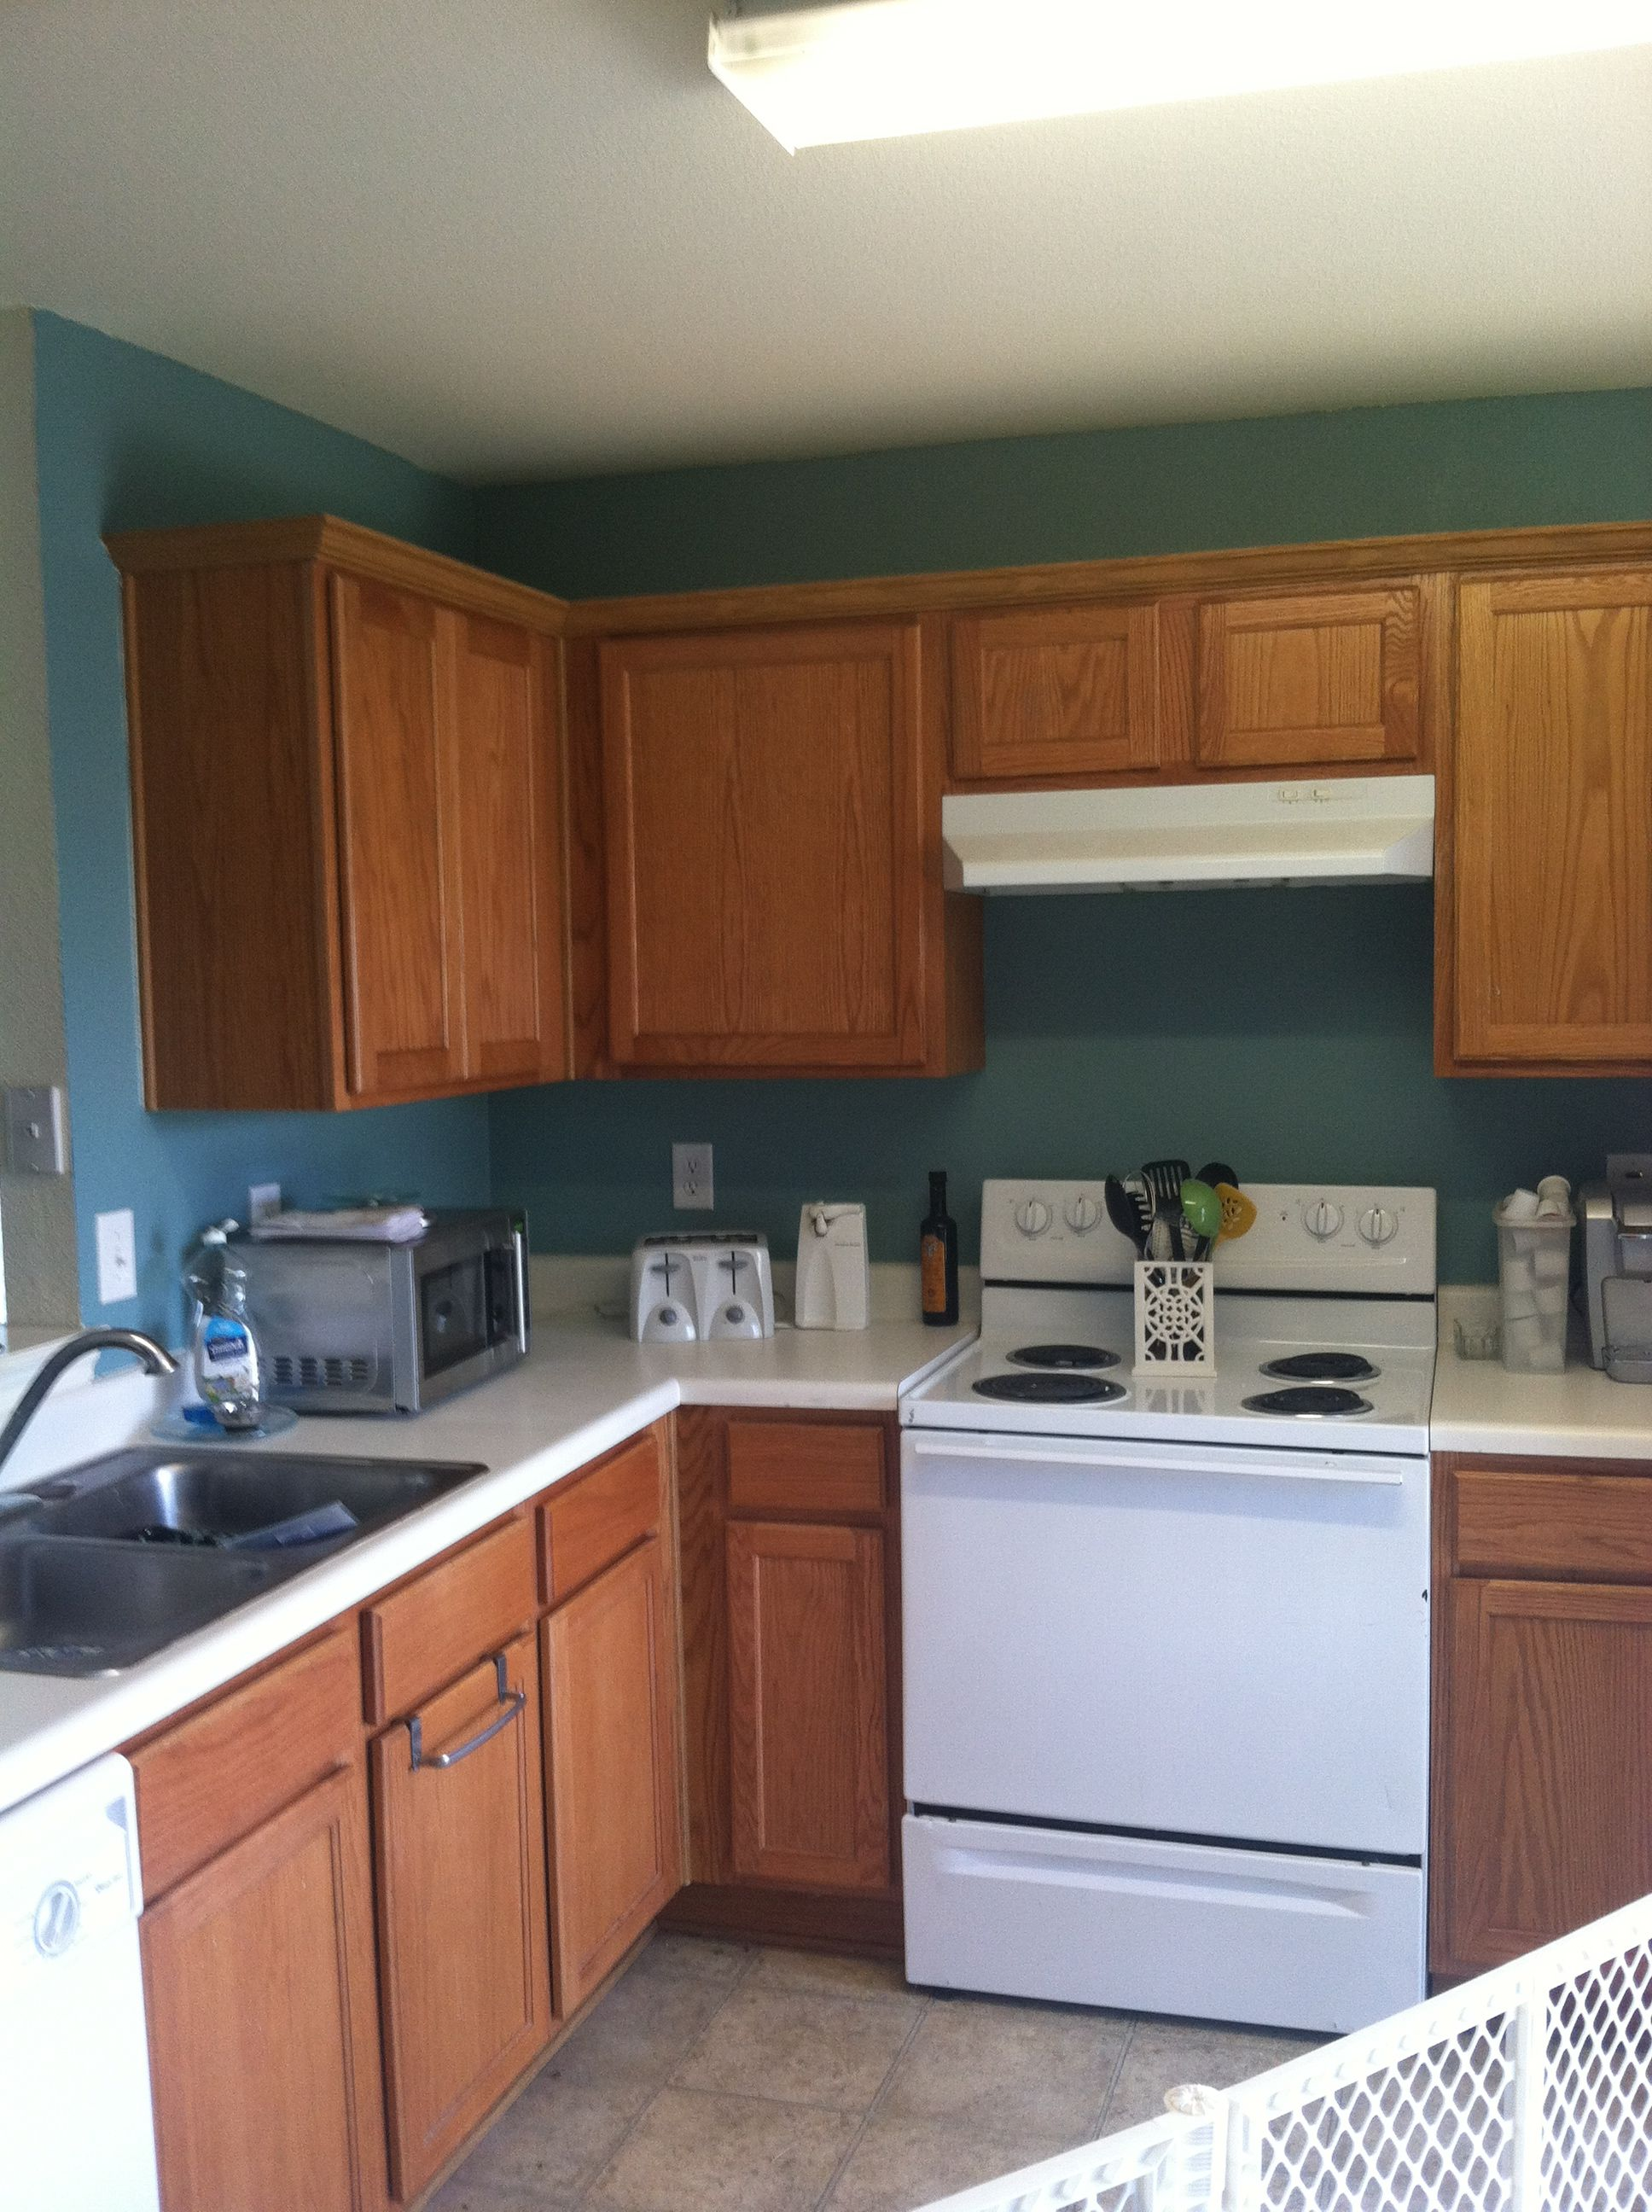 Behr Venus teal paint, oak cabinets, kitchen | Home | Pinterest